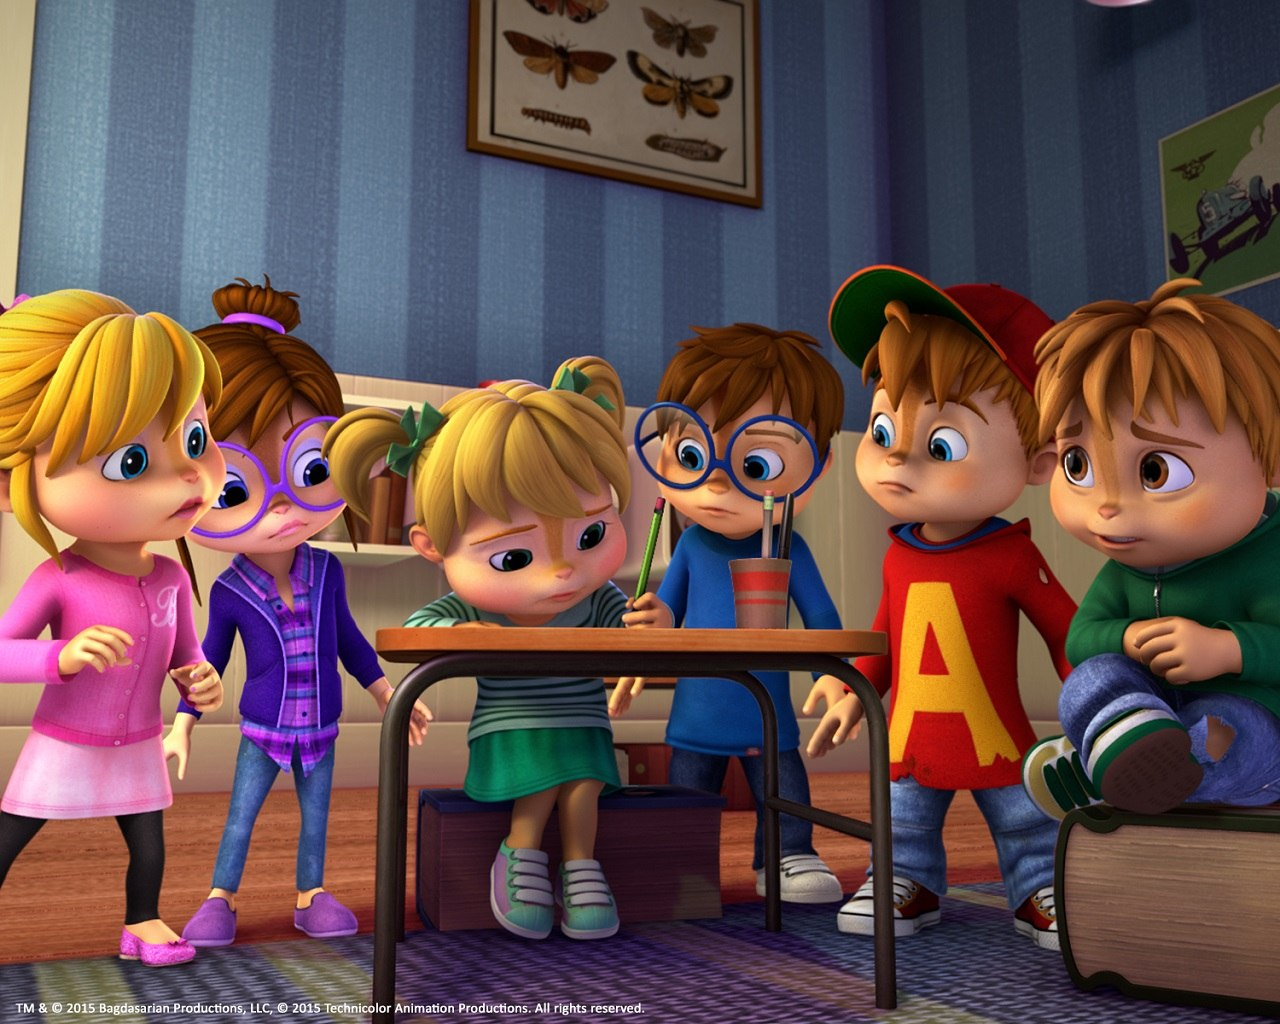 Alvin And The Chipmunks 3 Images alvinnn!!! and the chipmunks' gets greenlit for seasons 3